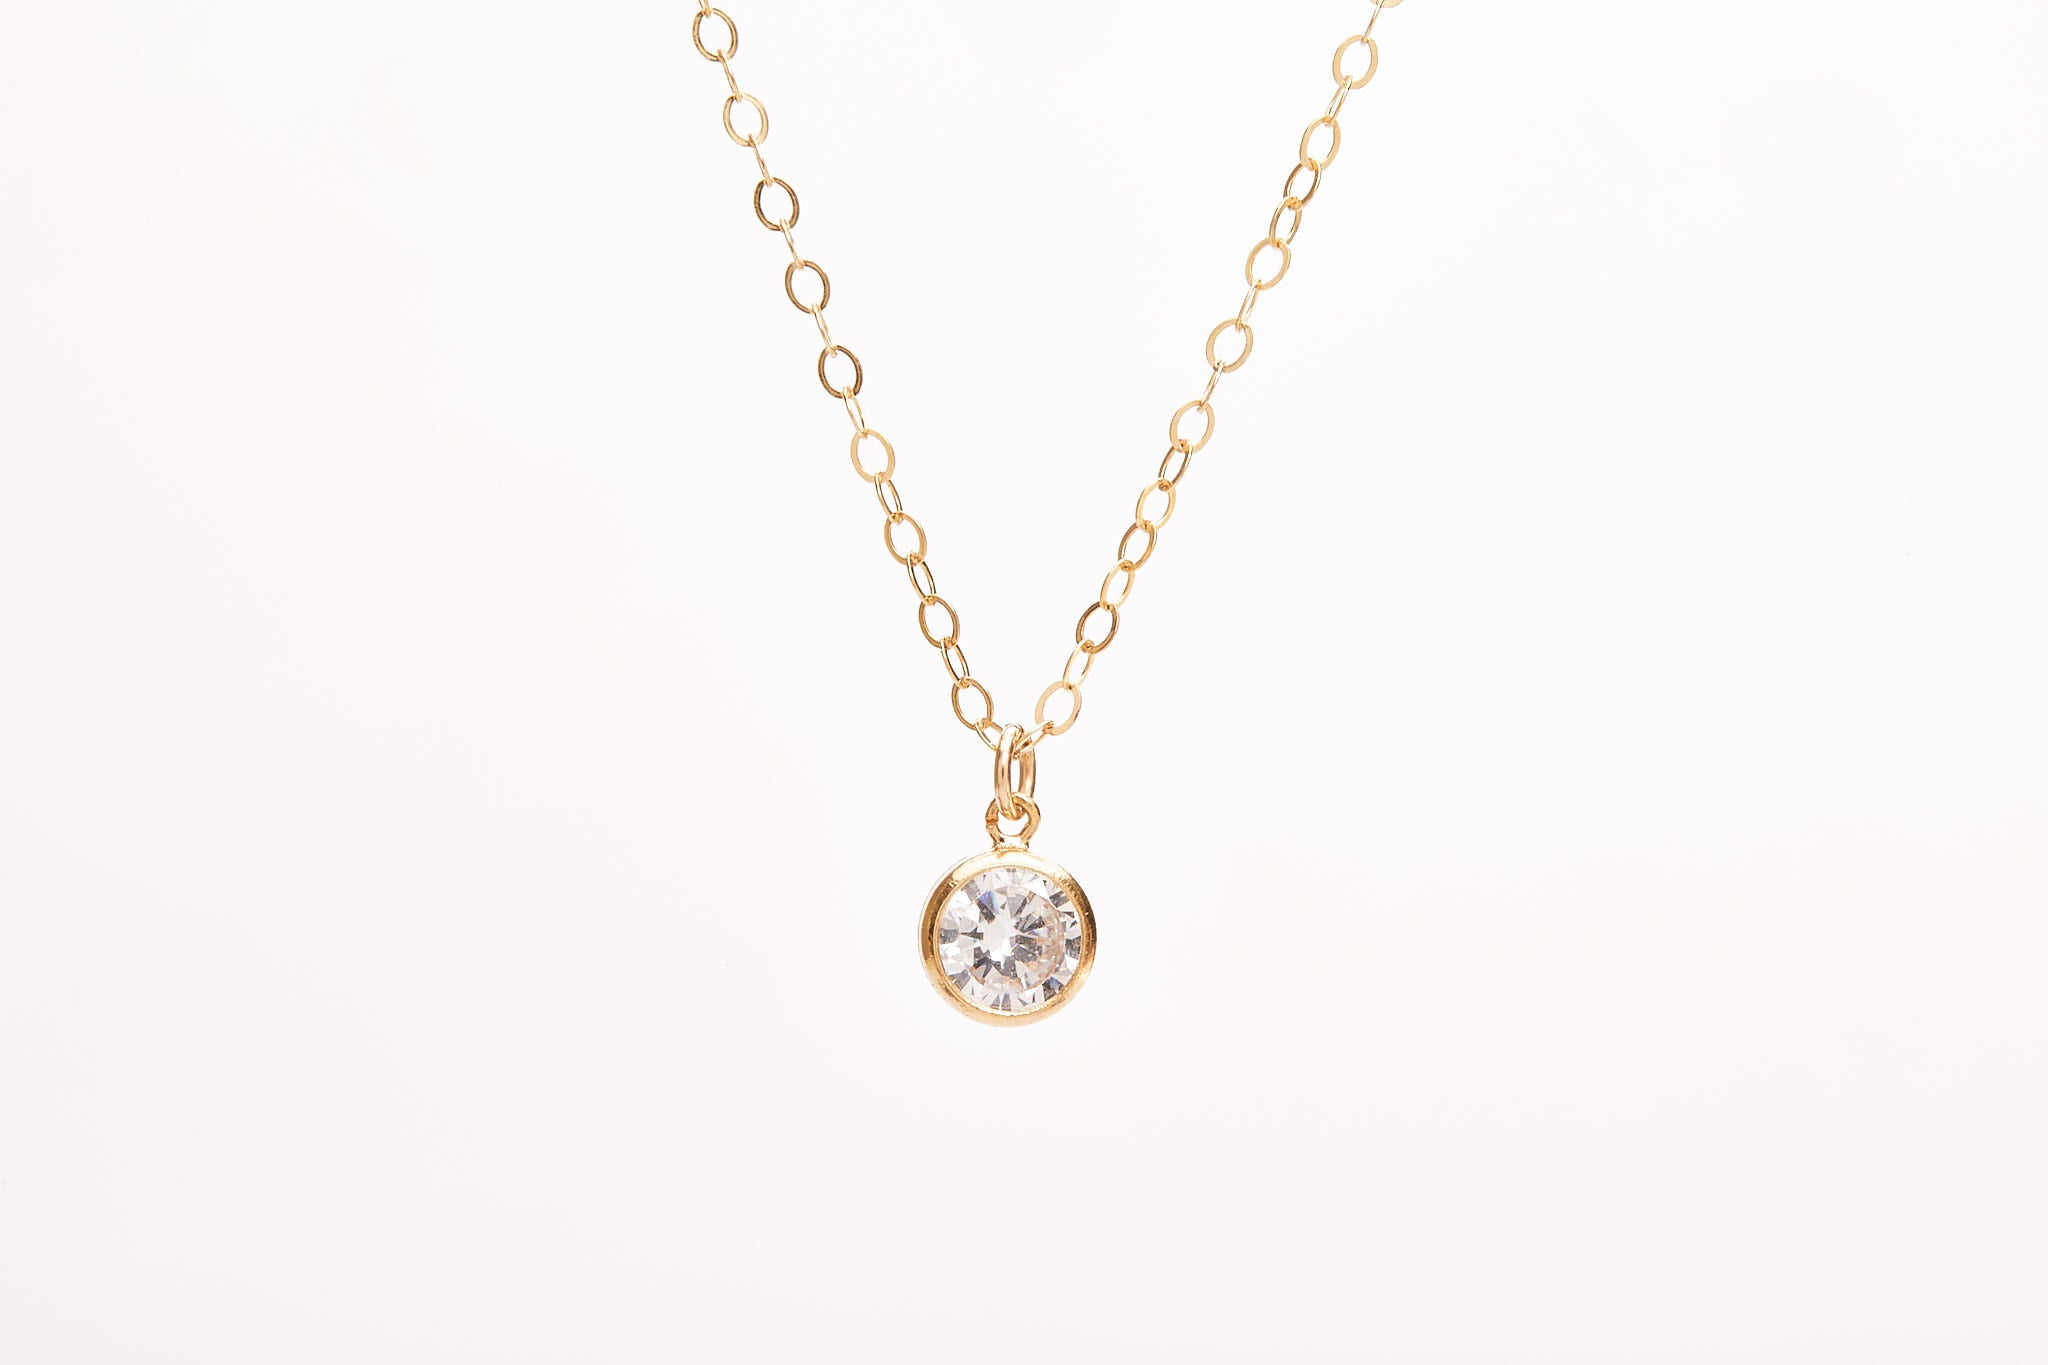 The CZ Necklace